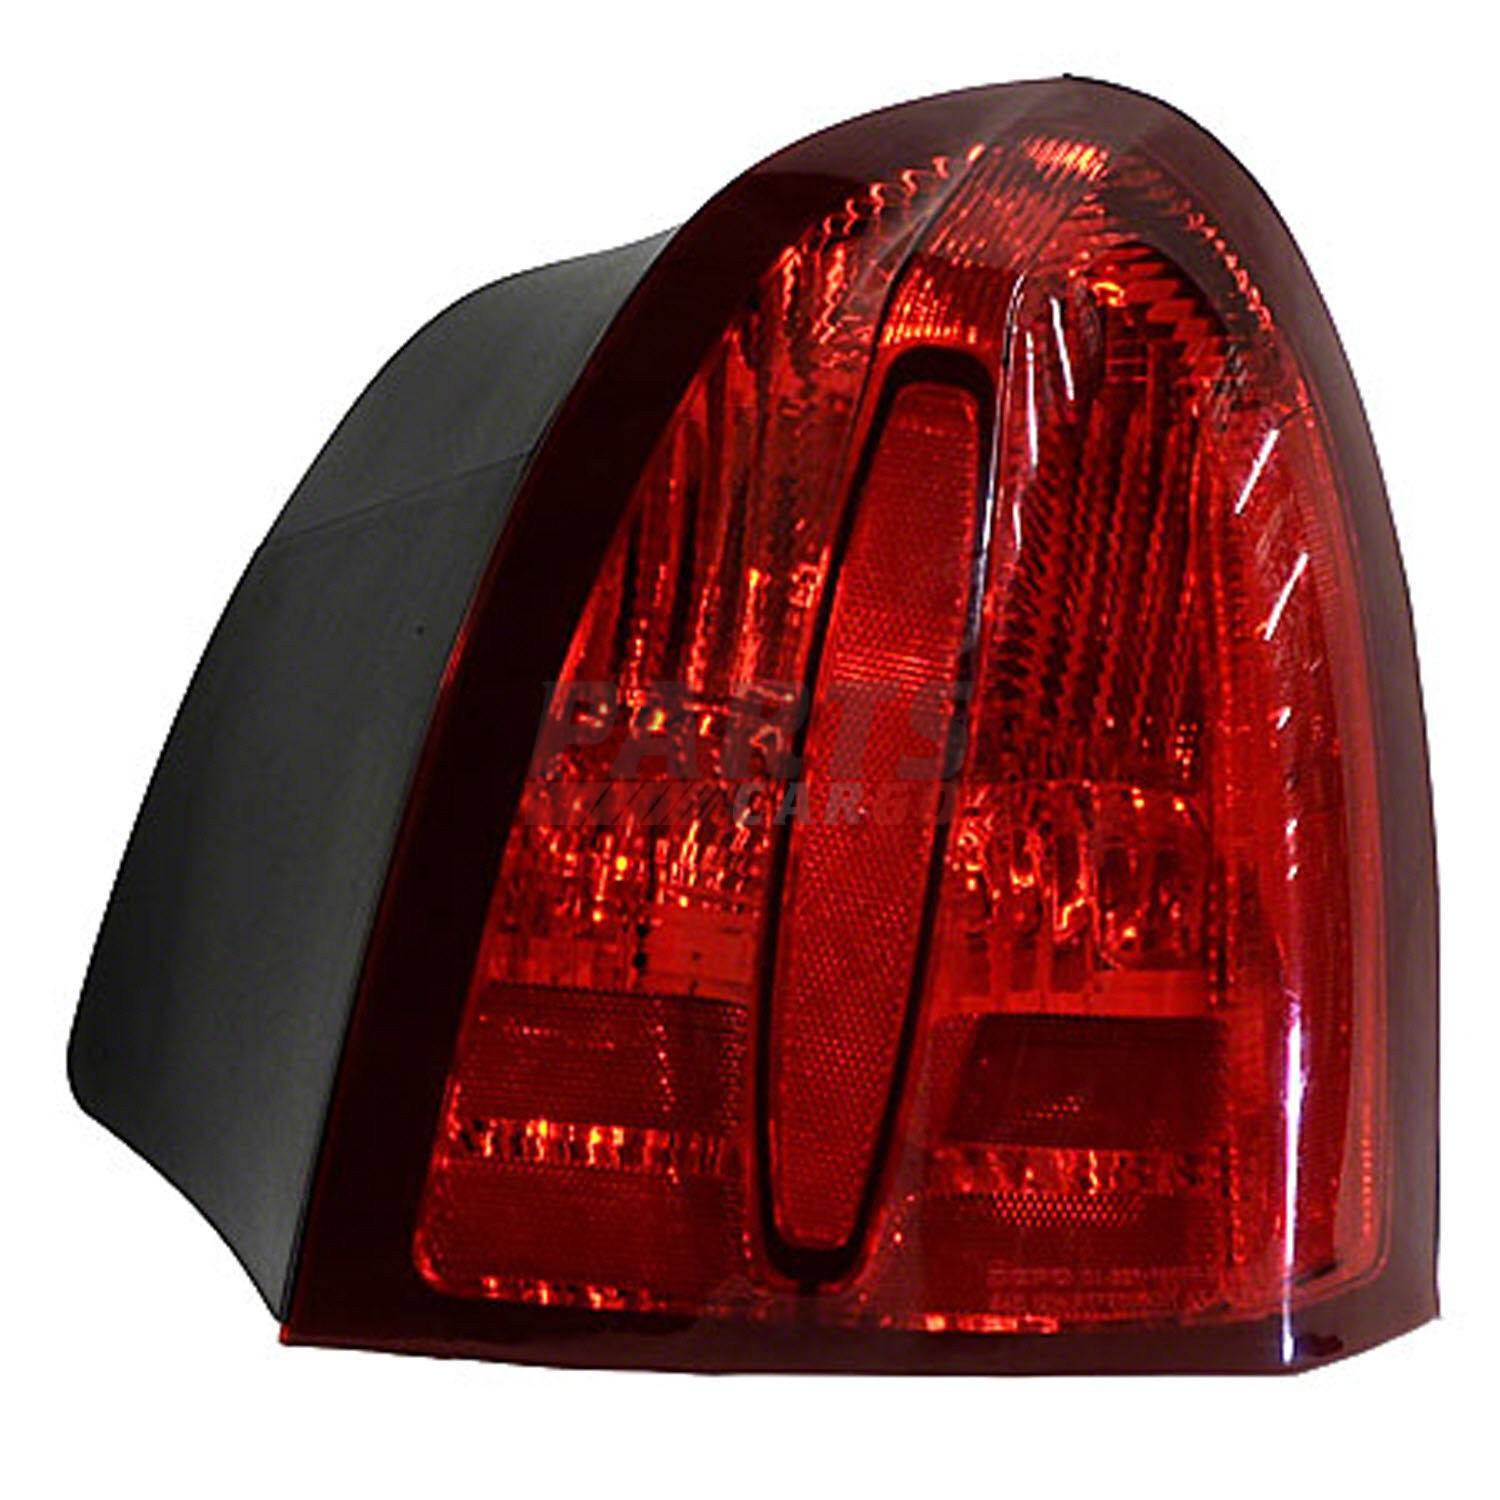 hight resolution of details about new tail light assembly right side fits 1998 2002 lincoln town car xw1z13404ba